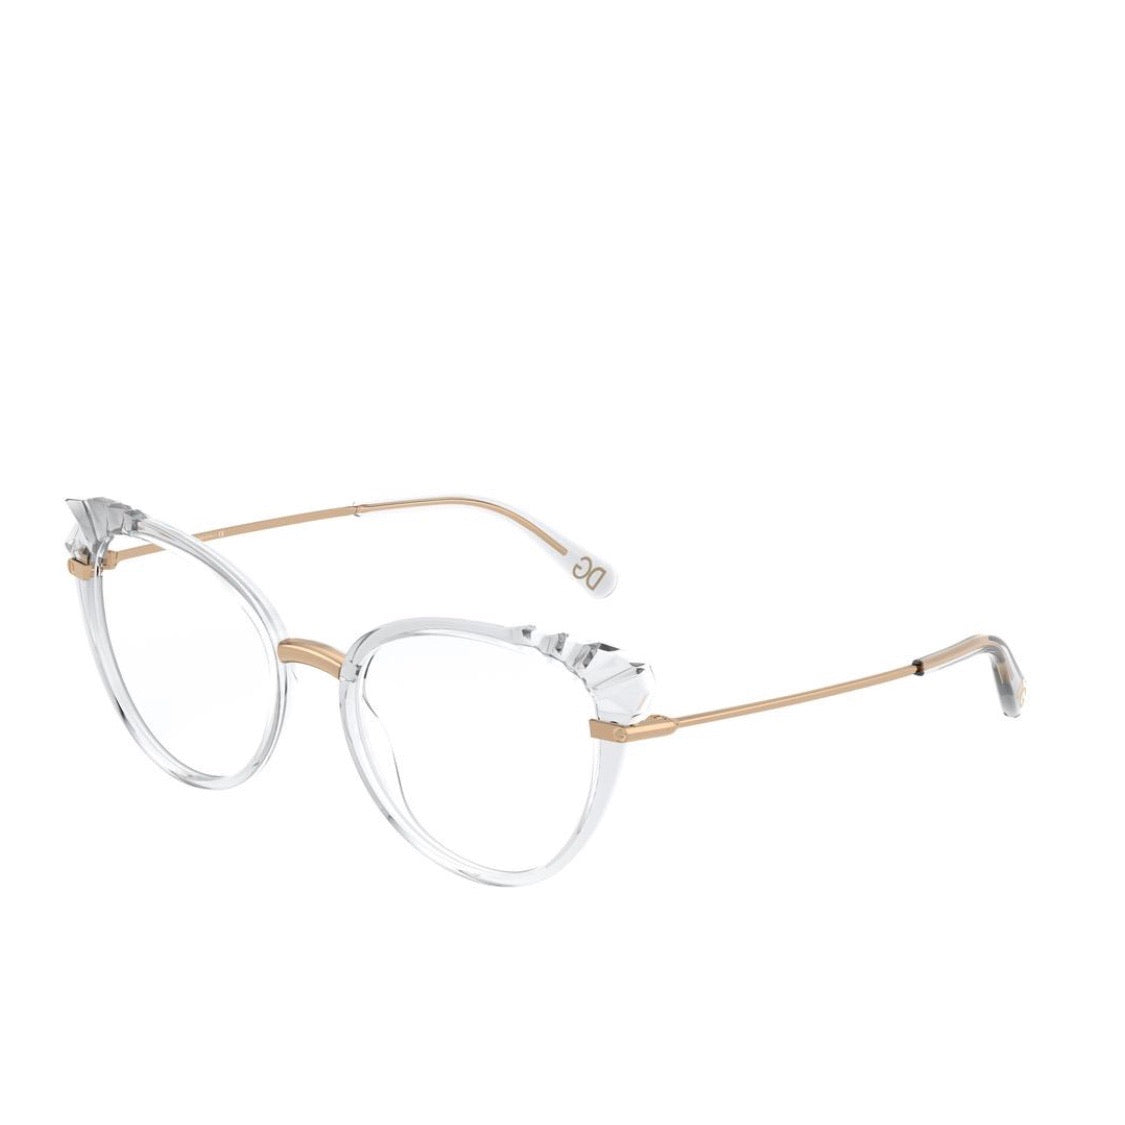 Dolce & Gabbana Crystal Cat Eye RX